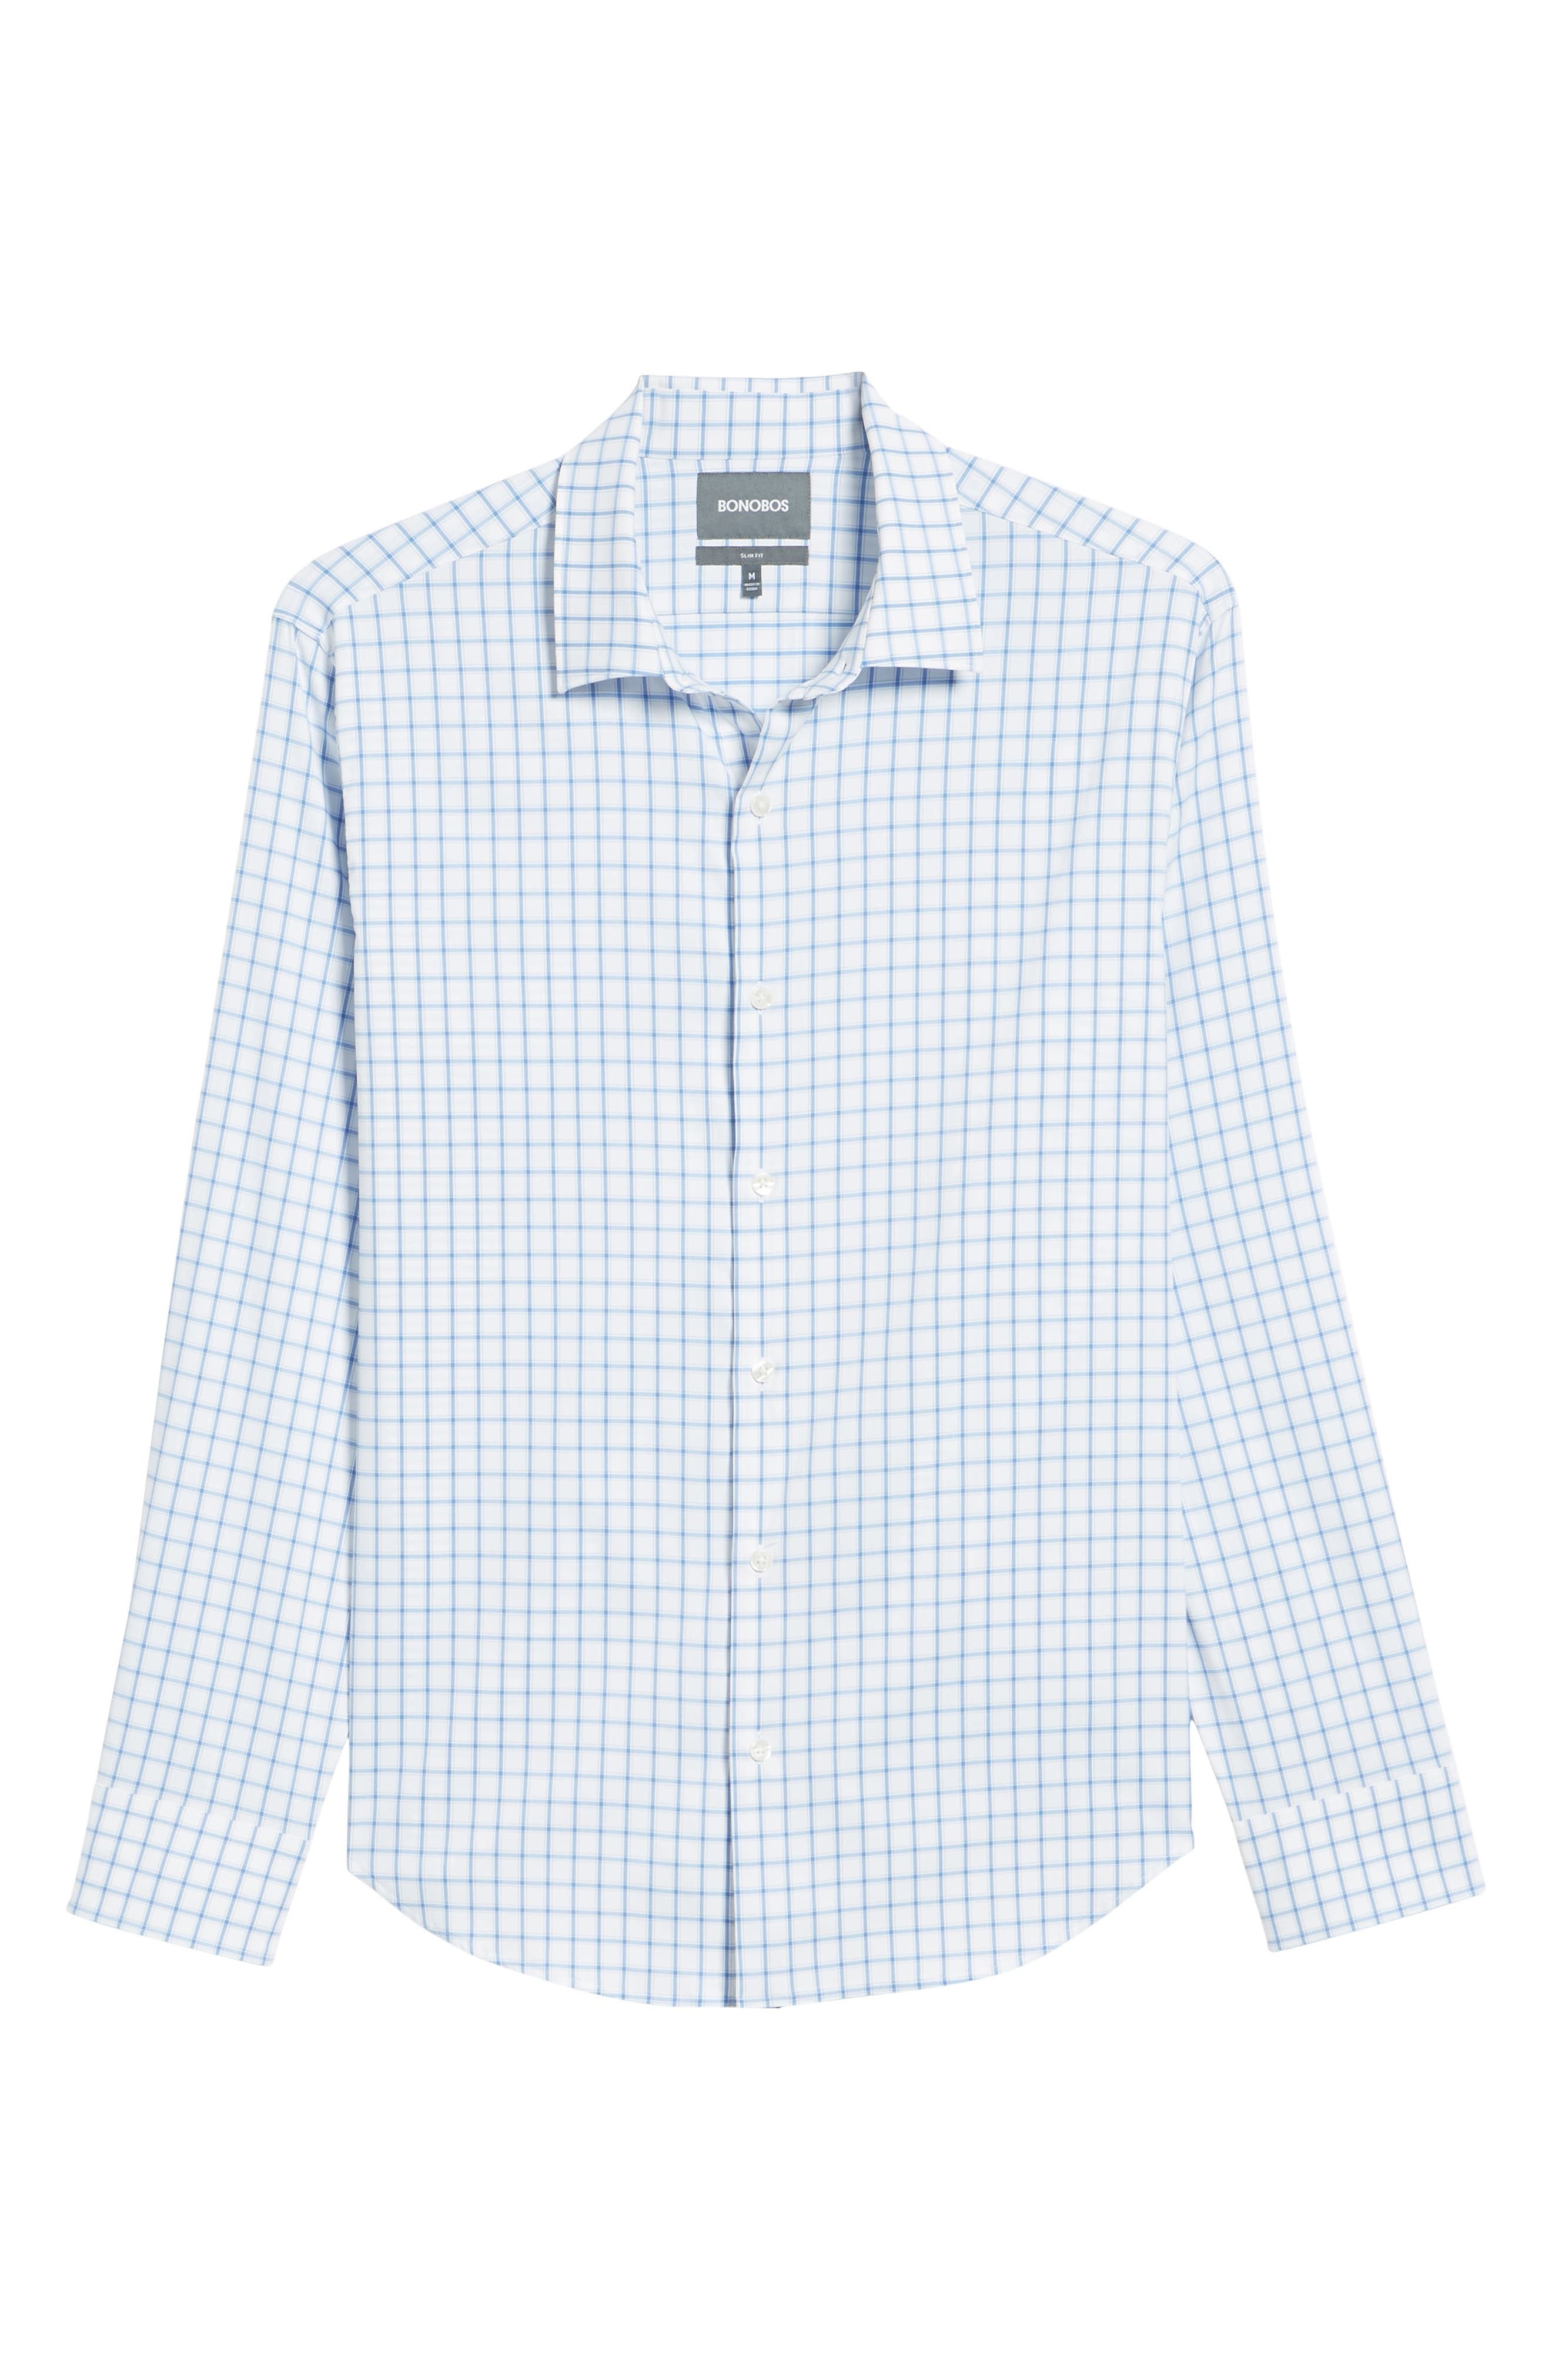 Slim Fit Check Performance Sport Shirt,                             Alternate thumbnail 6, color,                             Bray Oxford - Peony Coral